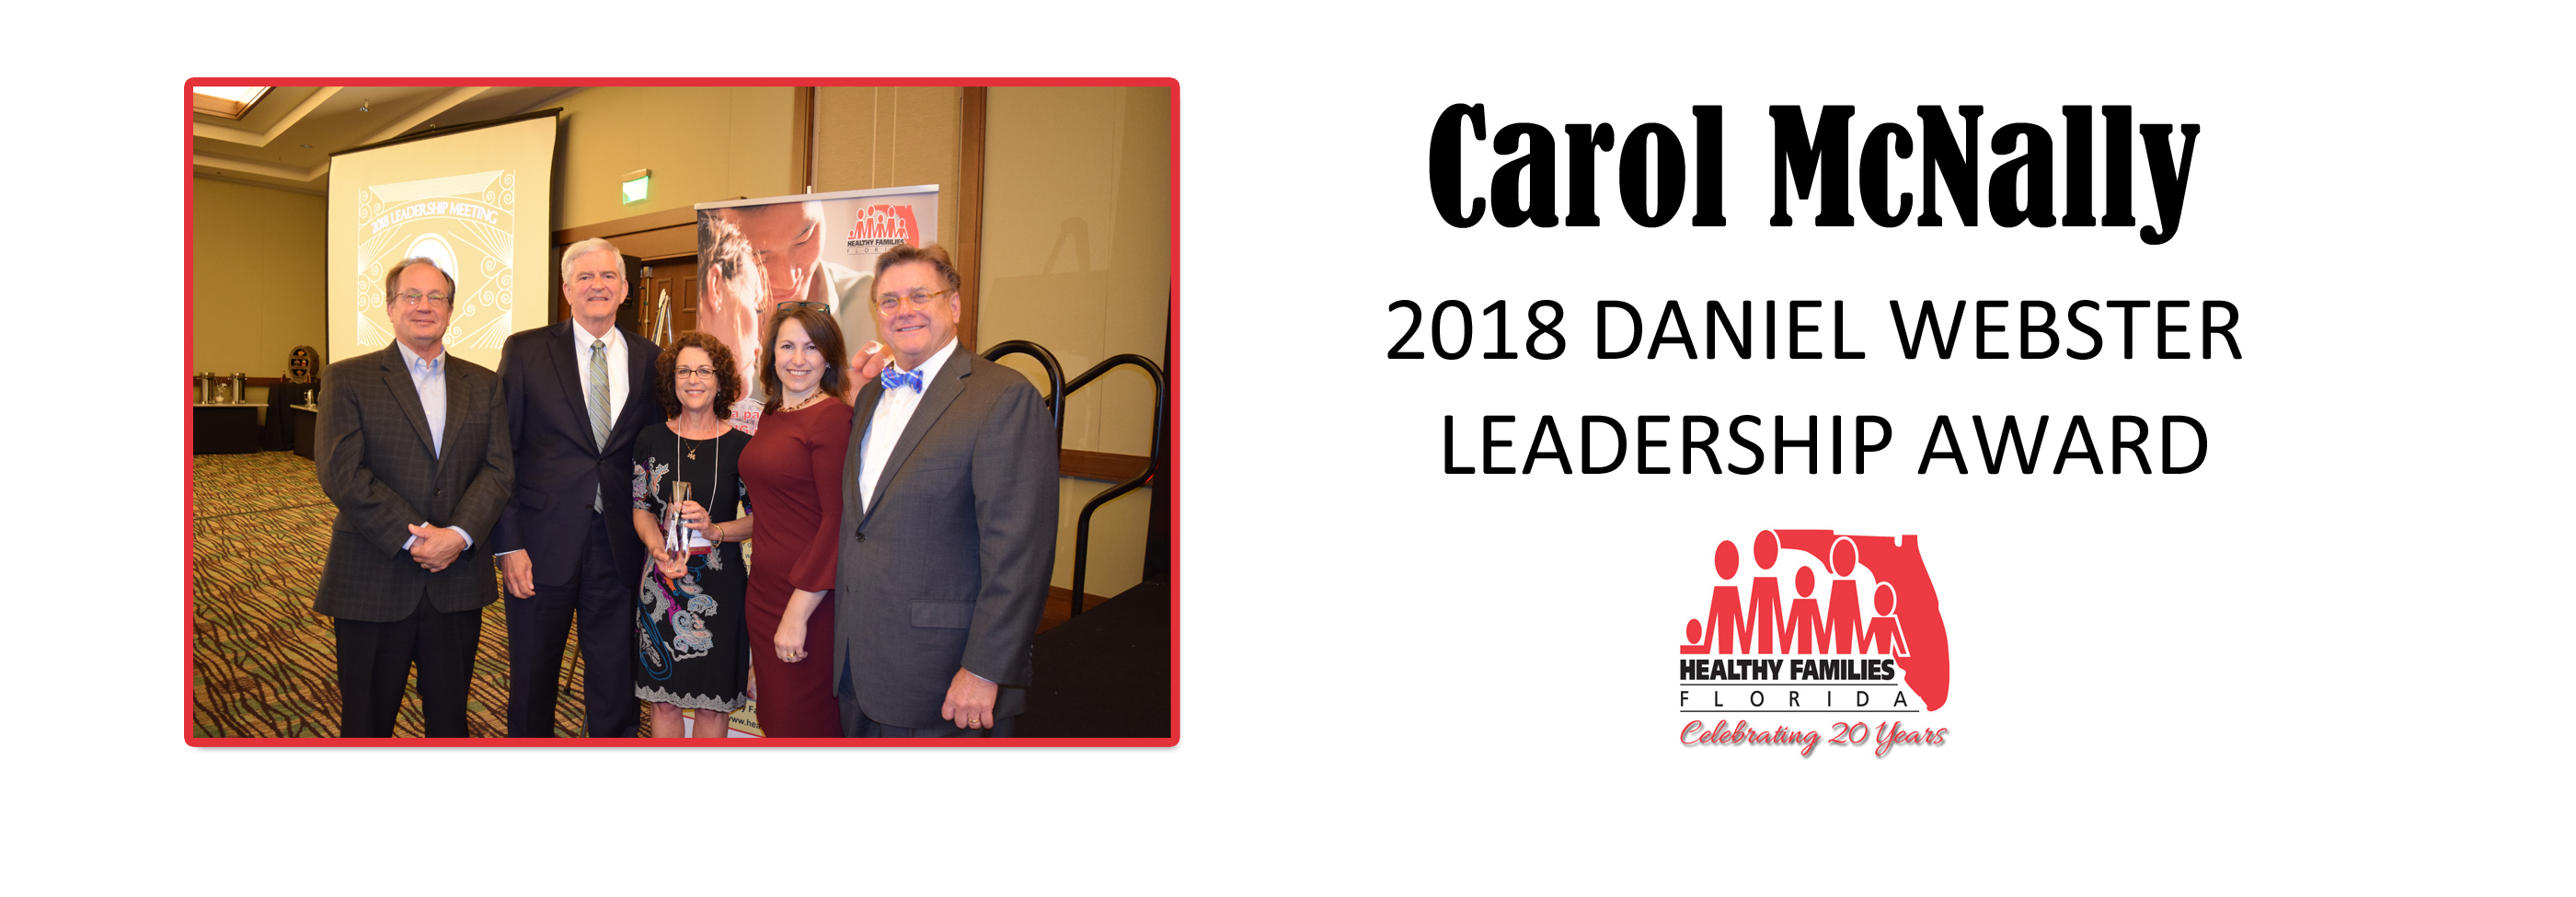 Carol McNally Accepts the 2017 Daniel Webster Leadership Award